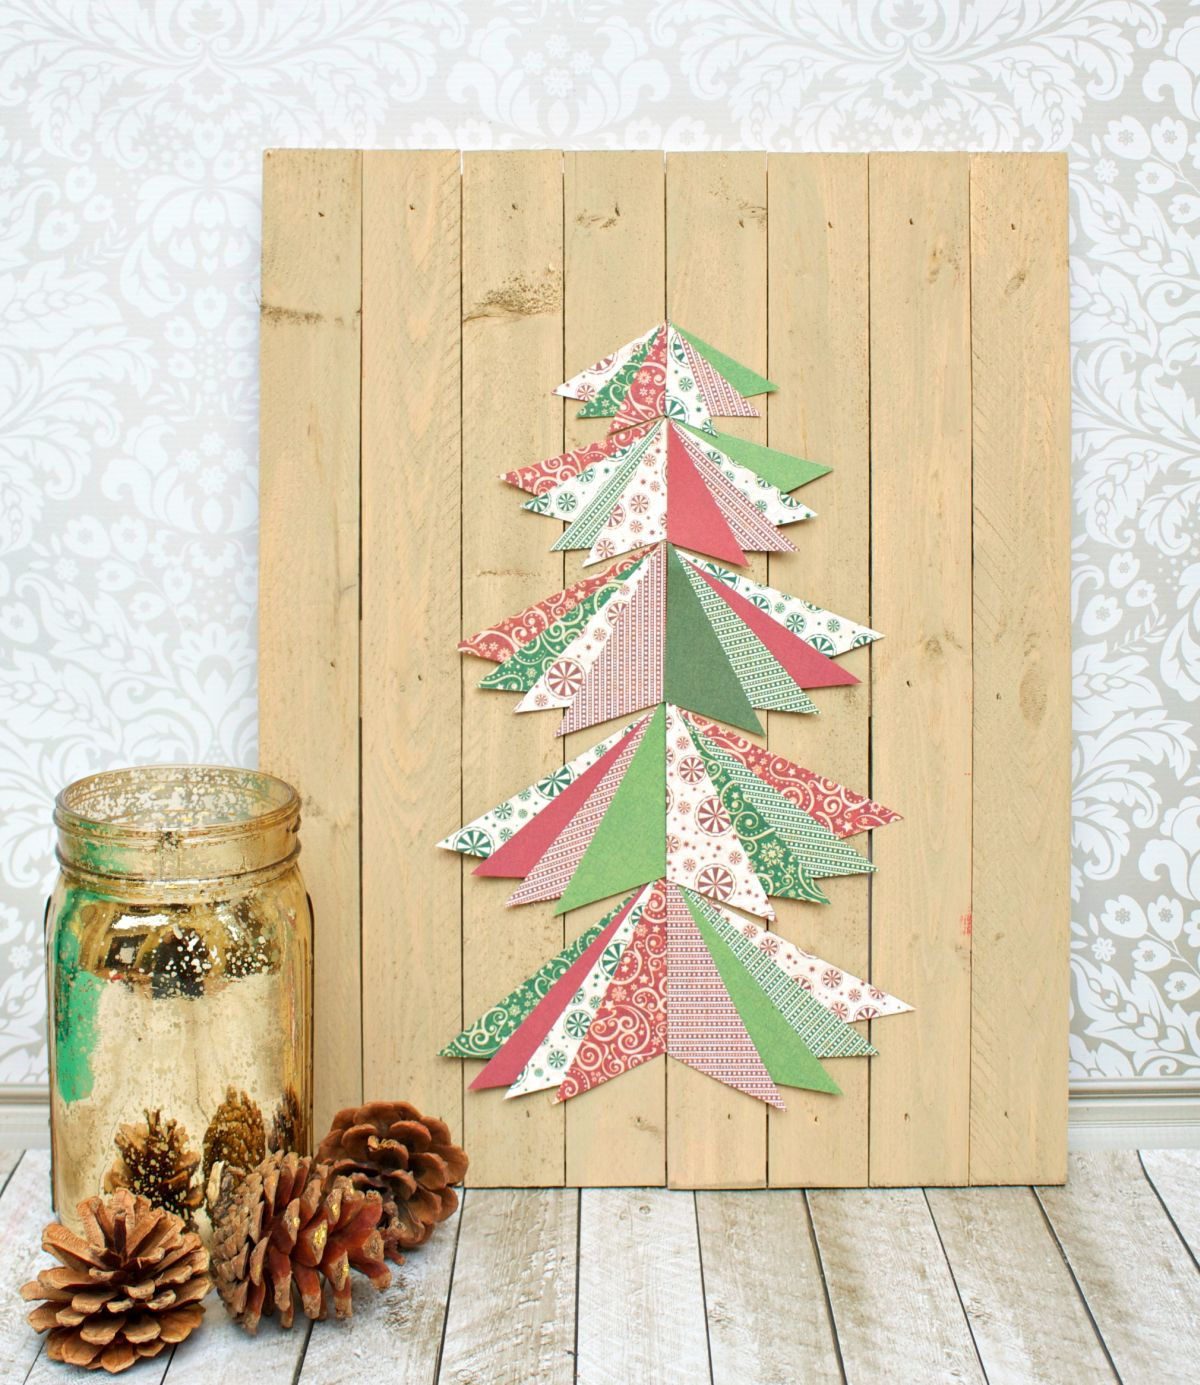 Original Christmas Decorations Which You Can Craft Yourself